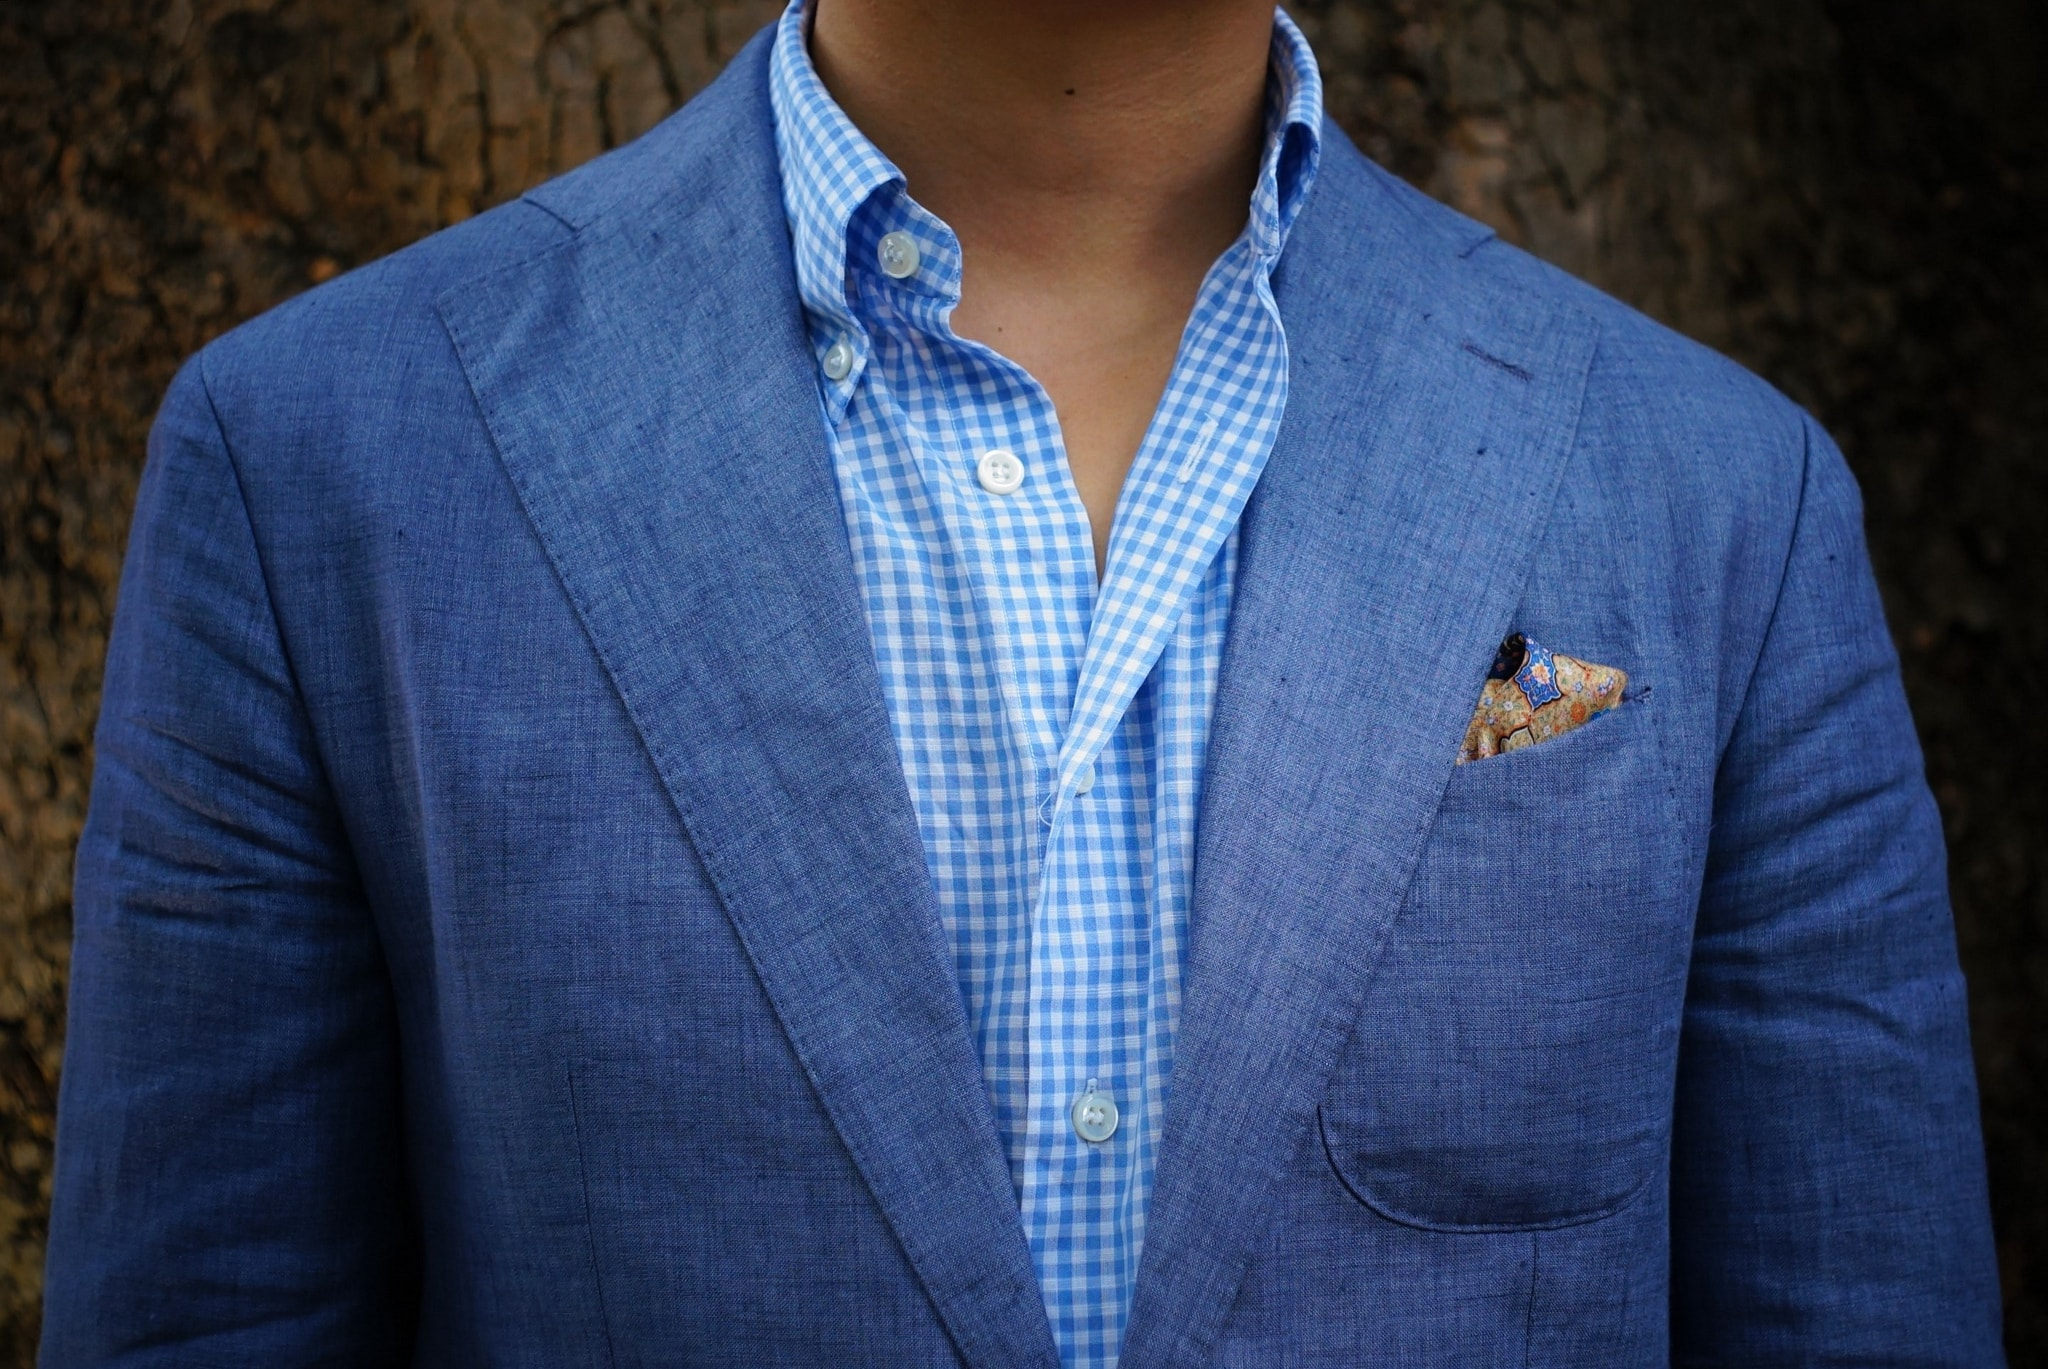 Best Places for Shopping in Hoi An - Tailor-made suit